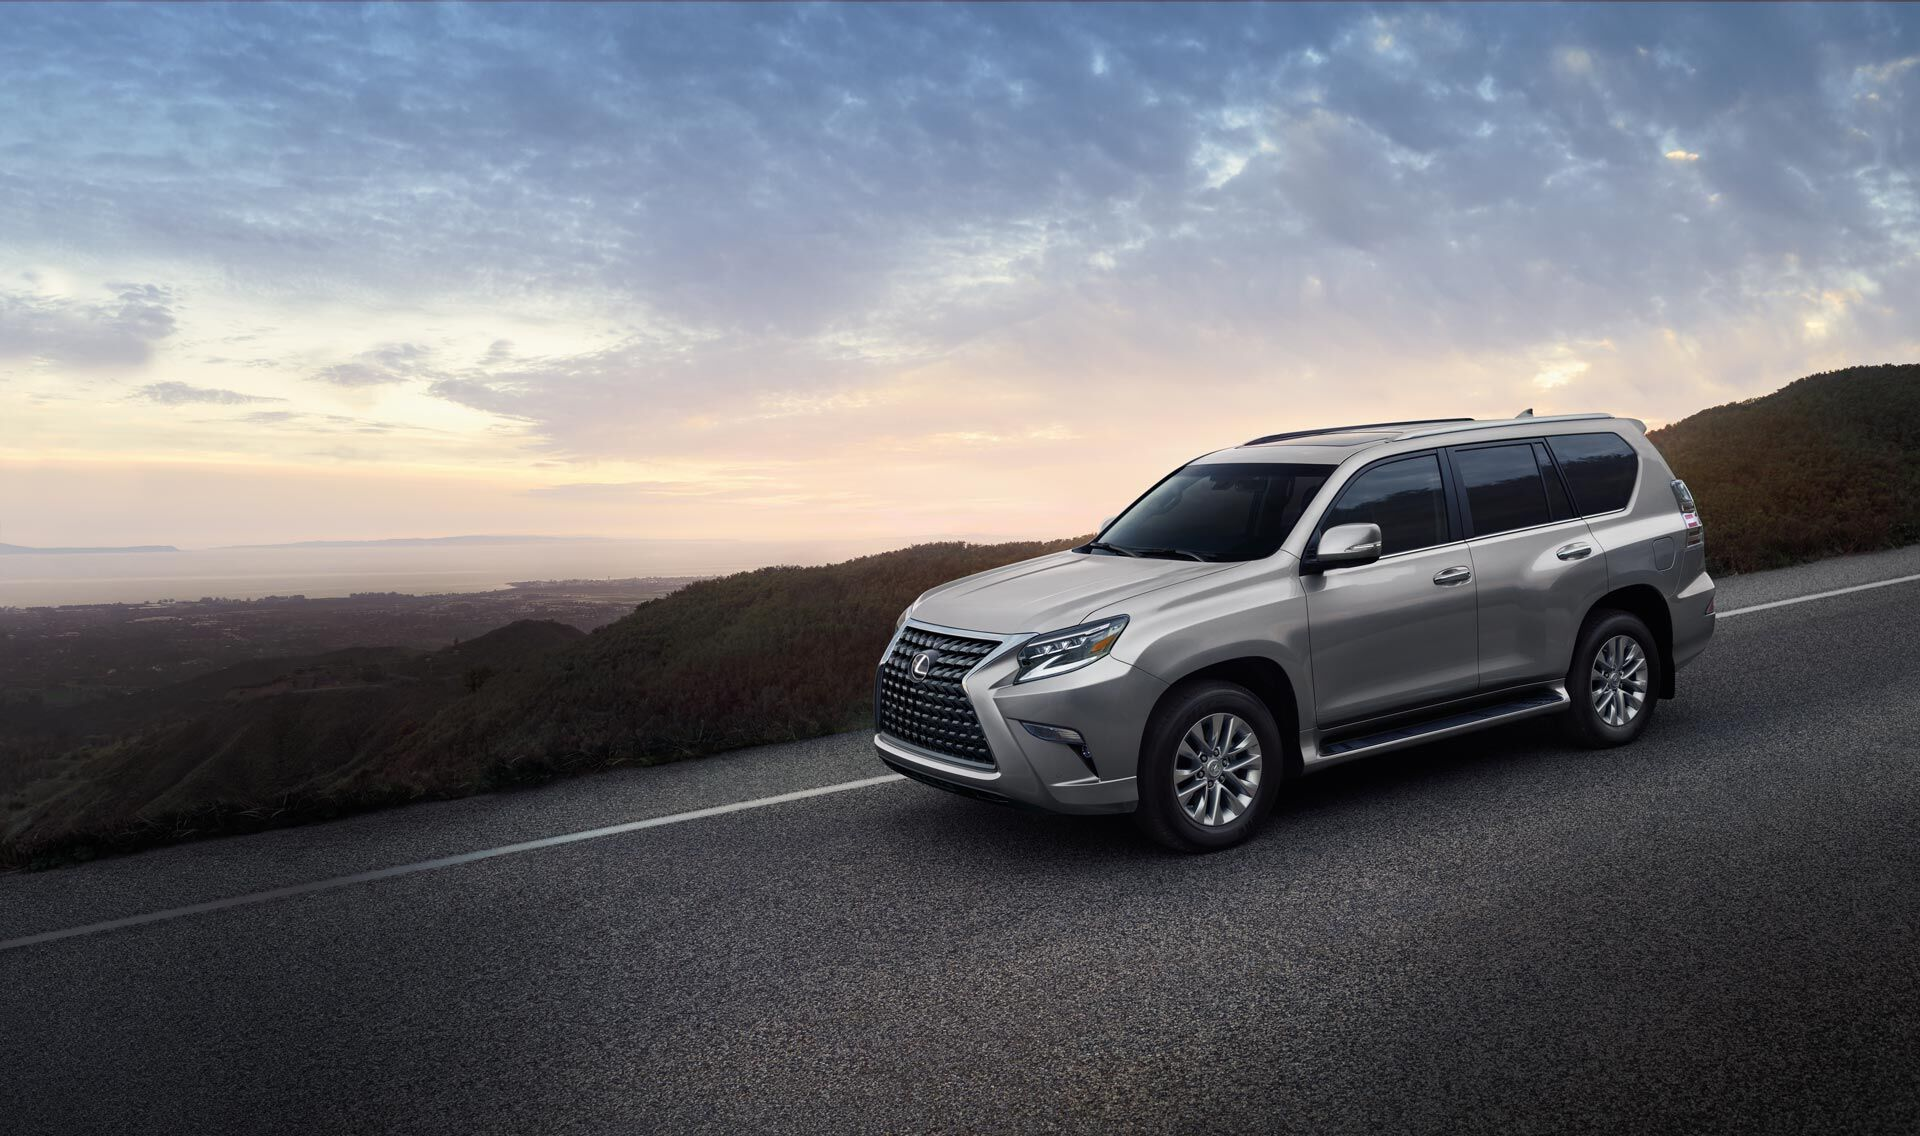 Exterior of the Lexus GX shown in Atomic Silver.